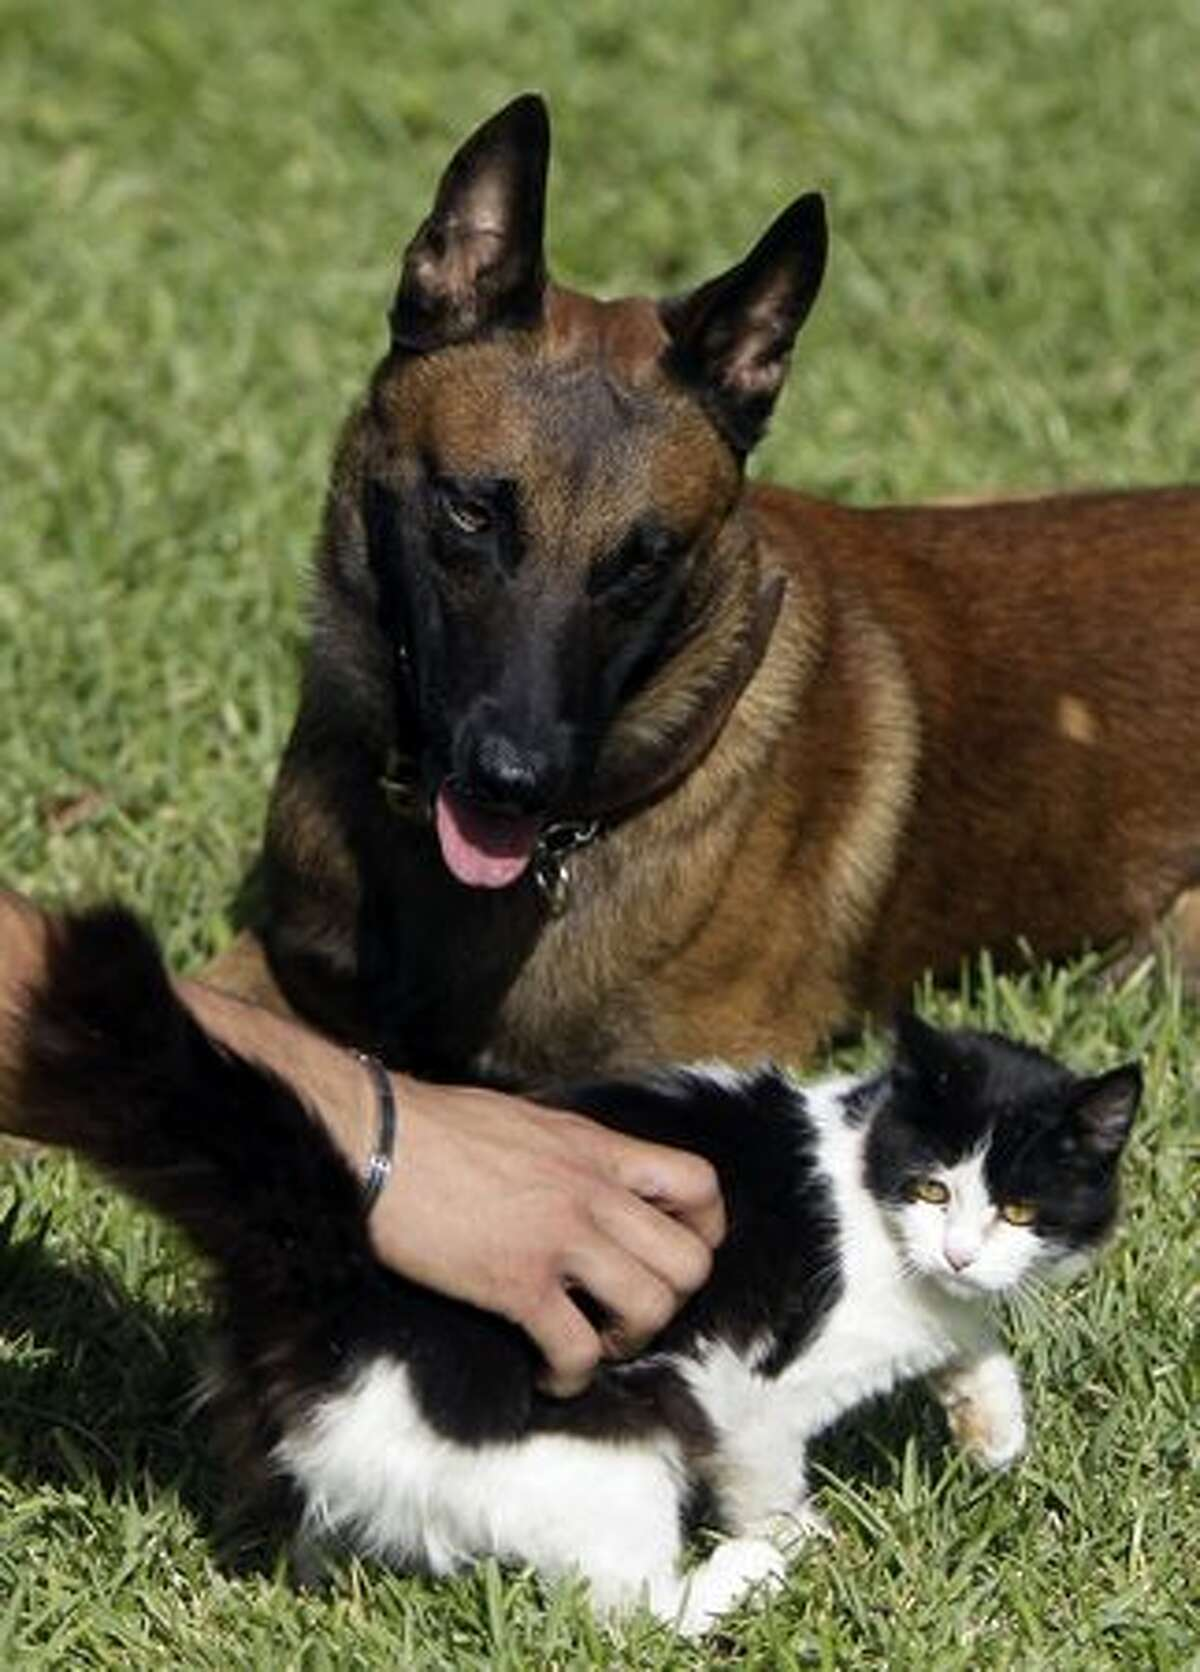 Professional dog trainer Hayssam Chedid places a cat in front of a dog during an obedience training session at the K9 school and hospital of the Middle East Kennel Cub at Nahr al-Kalb area, north of Beirut.